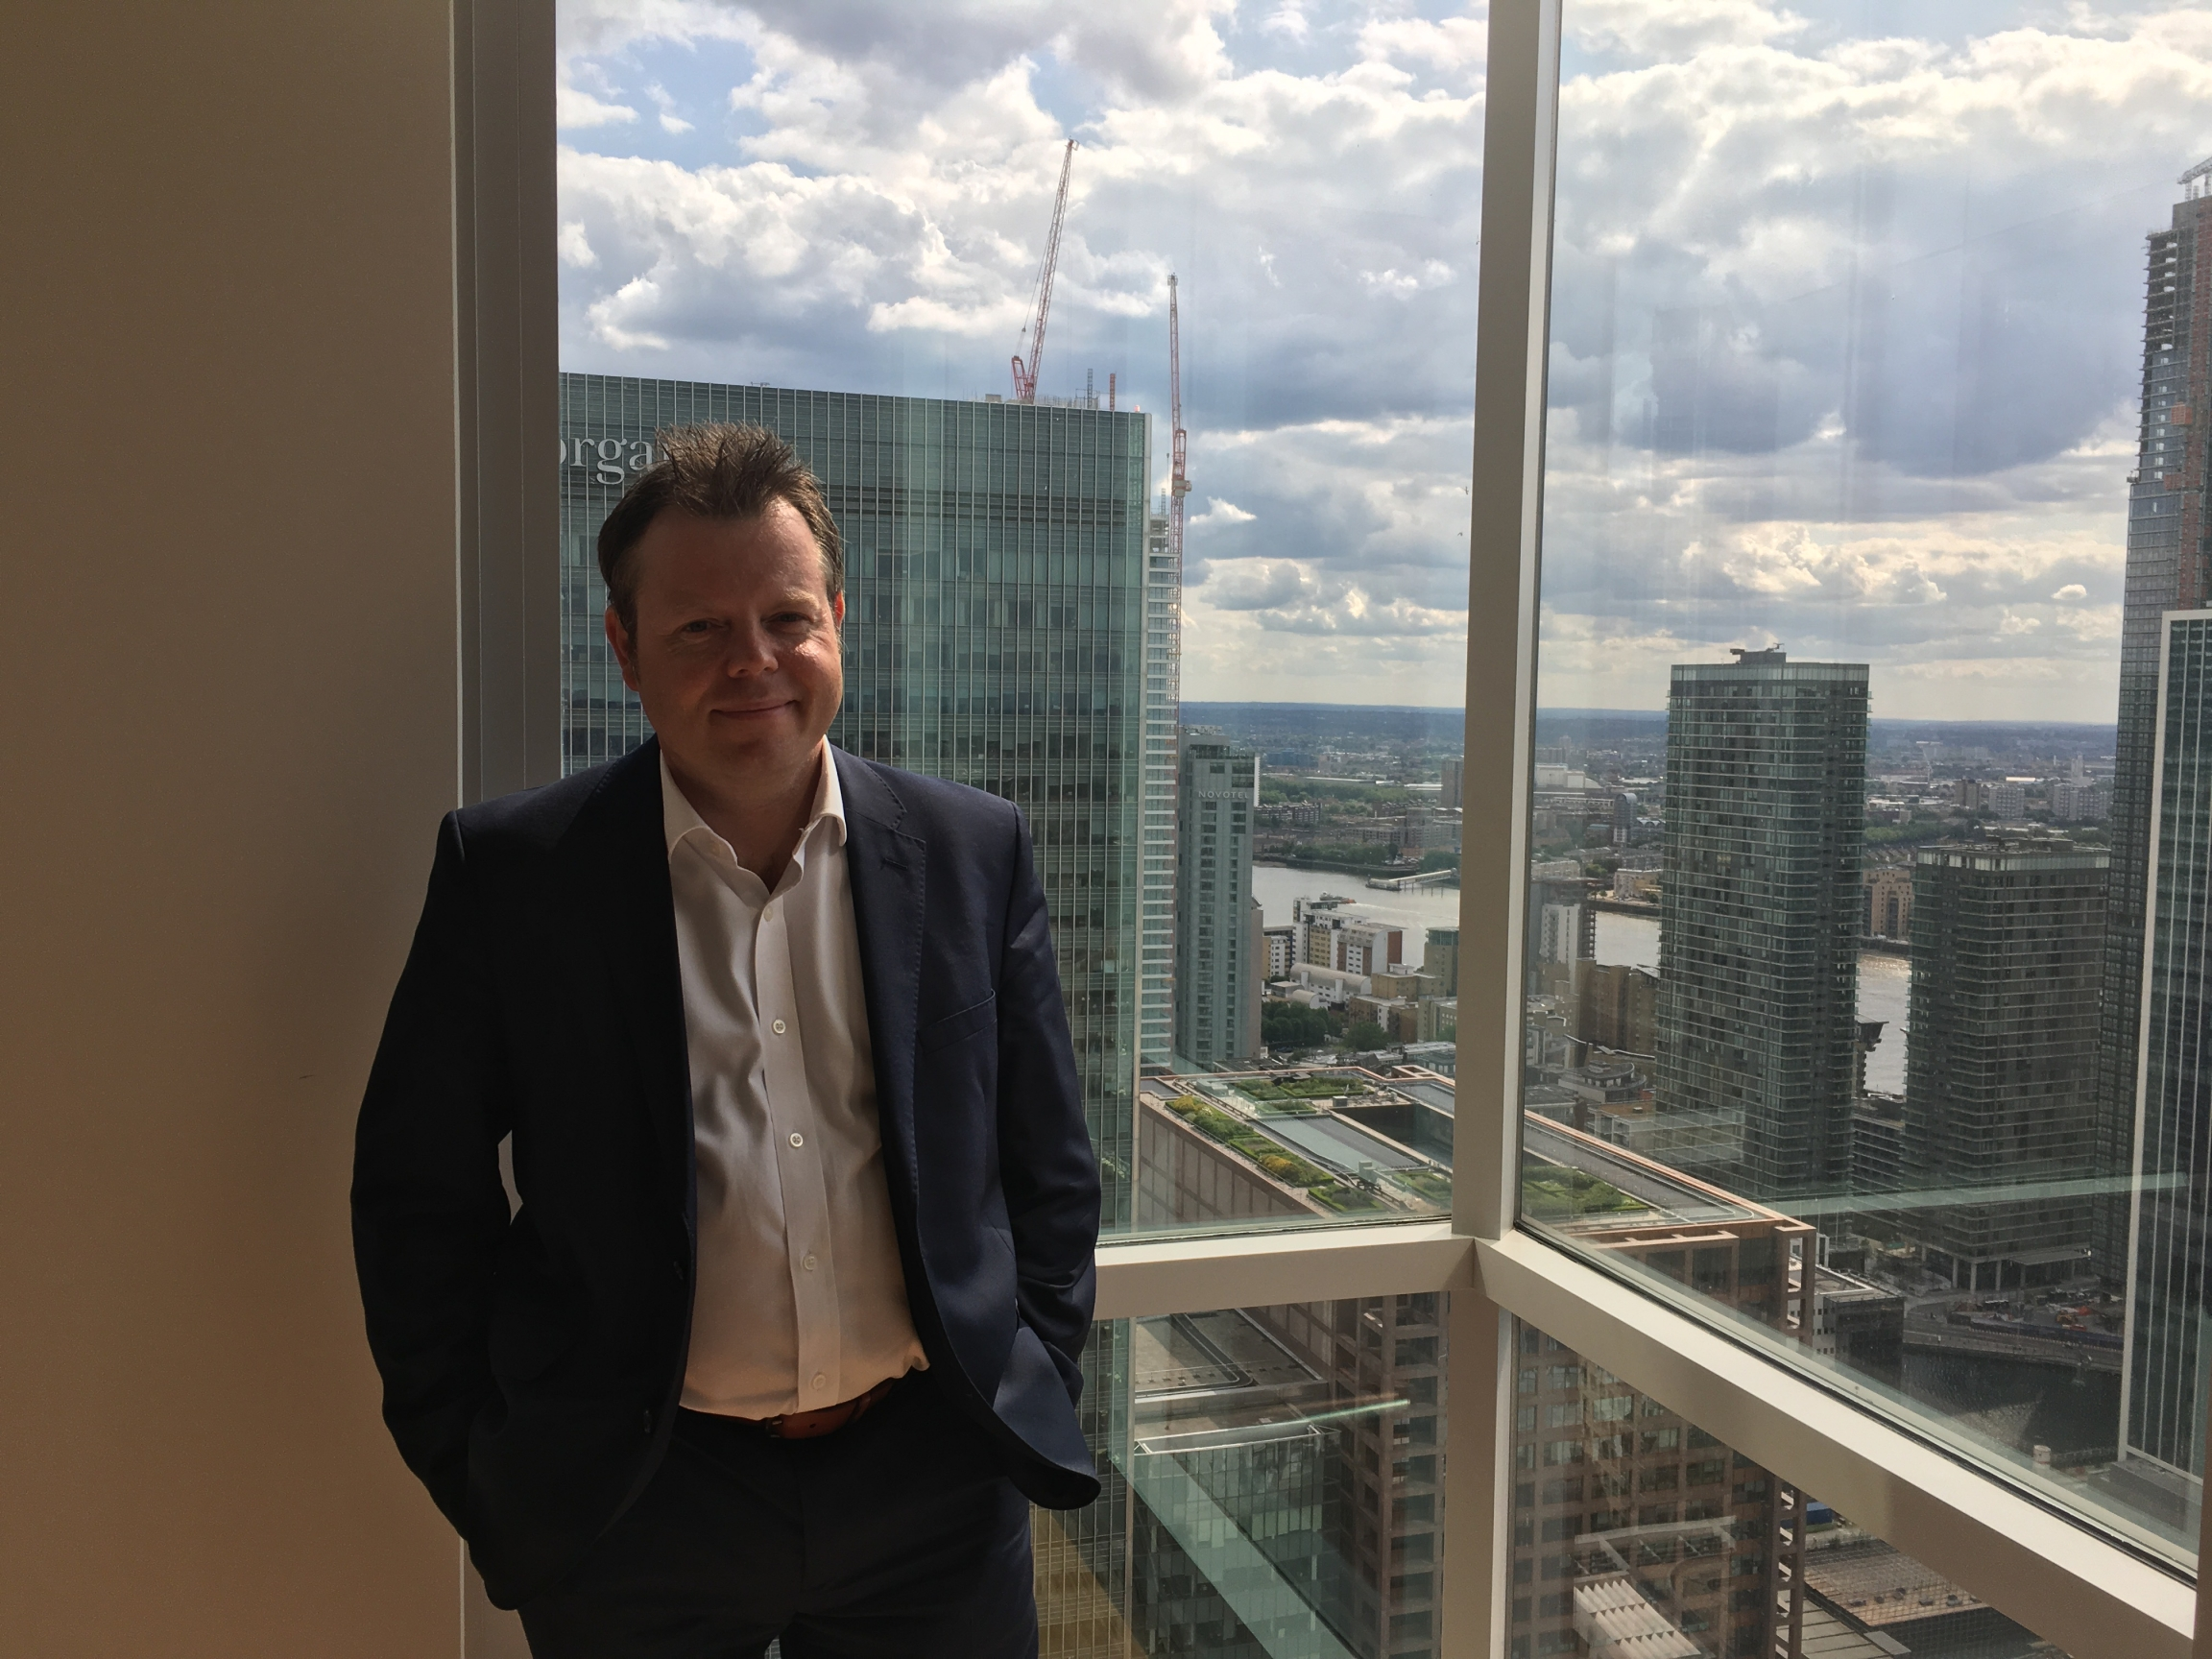 Martin Gettings, the head of sustainability at Canary Wharf Group, is working to reduce plastic waste across this multi-billion dollar commercial estate, which was just labeled the first plastic-free commercial district in the UK.